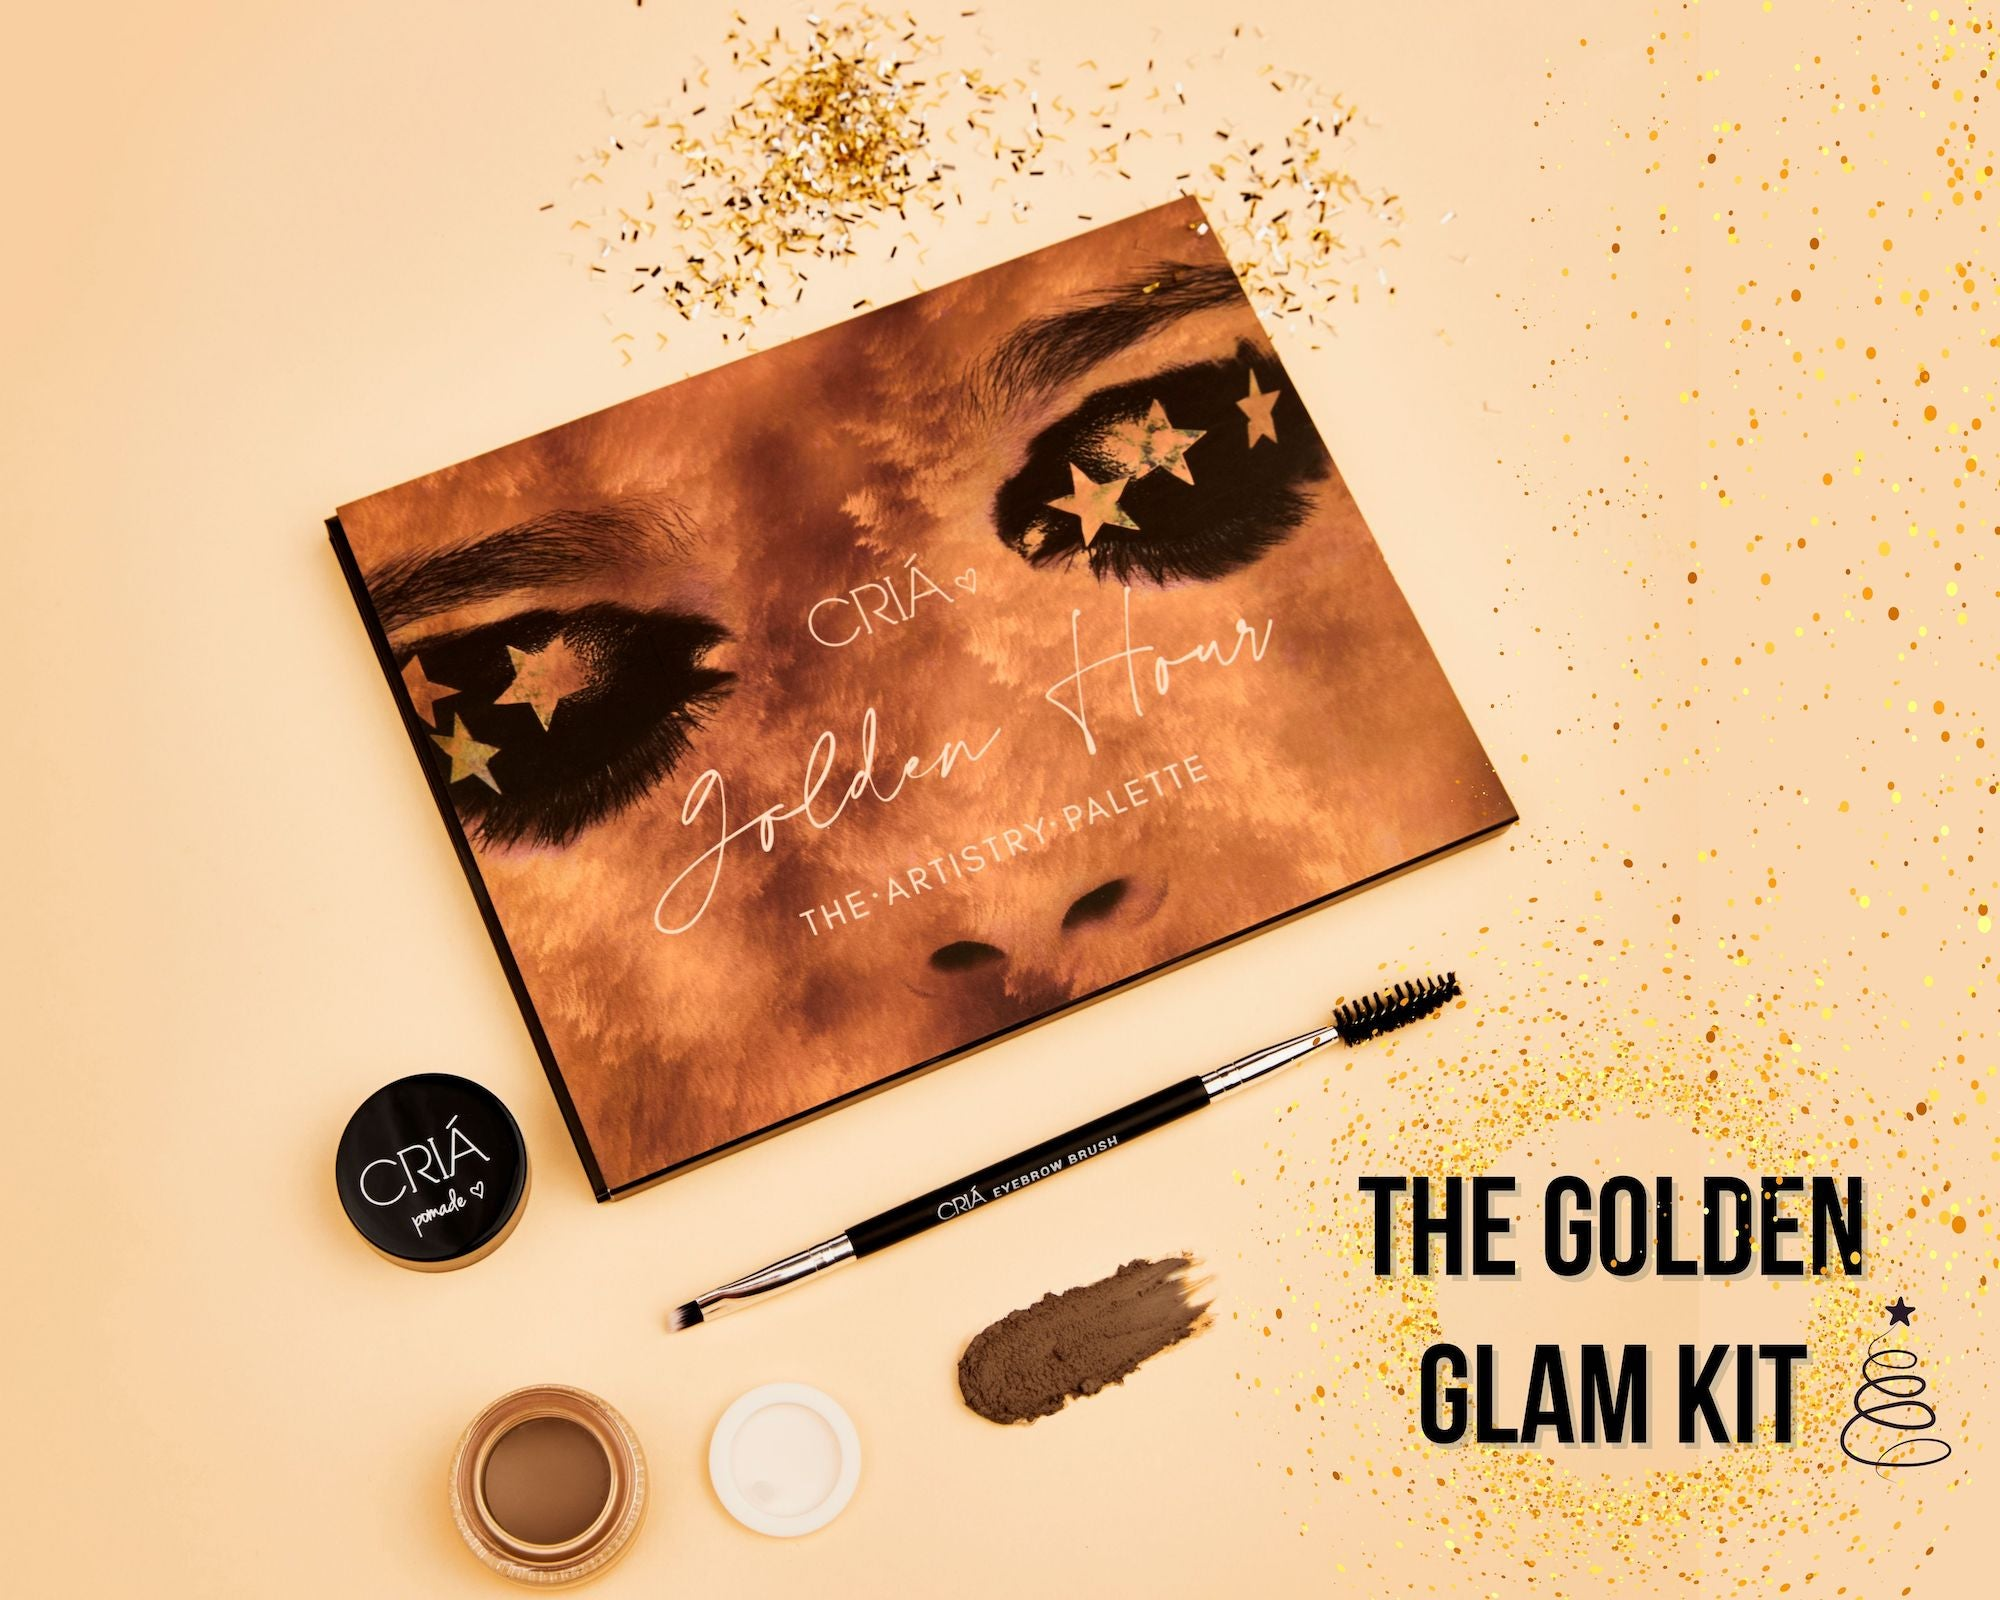 The Golden Glam Kit